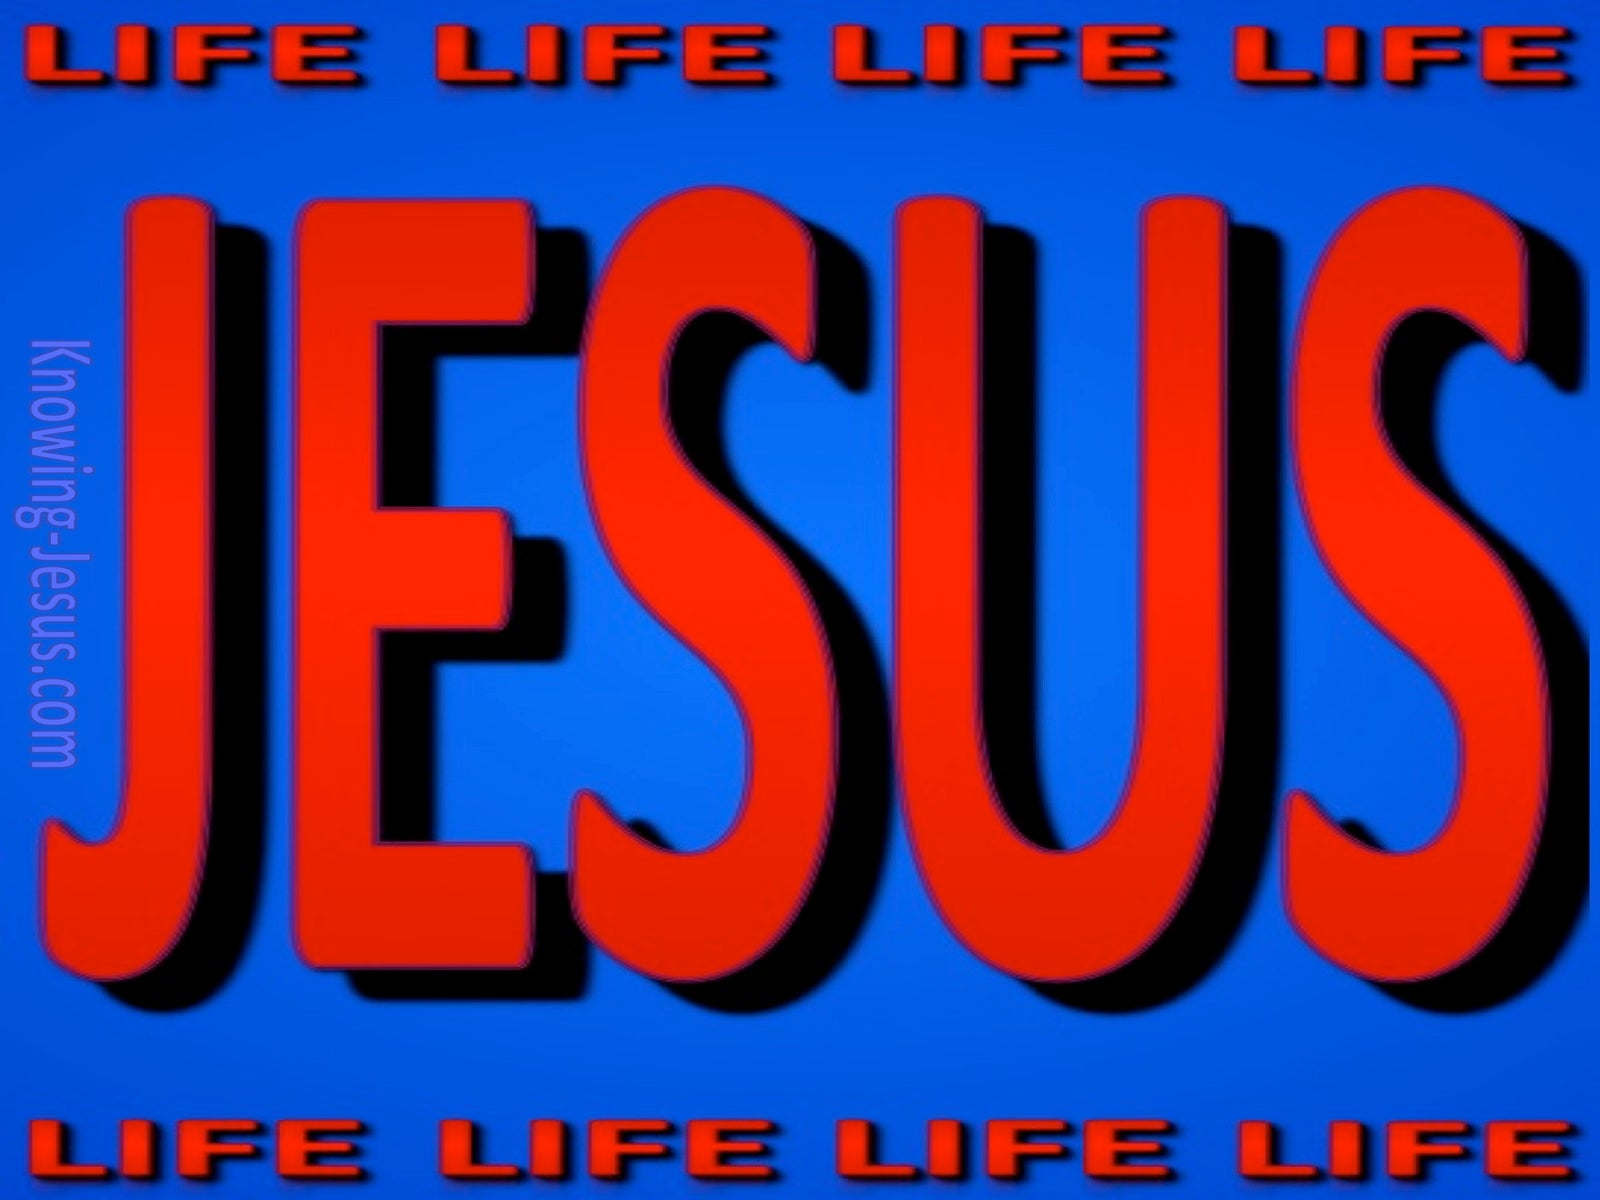 JESUS - Is Life (red)